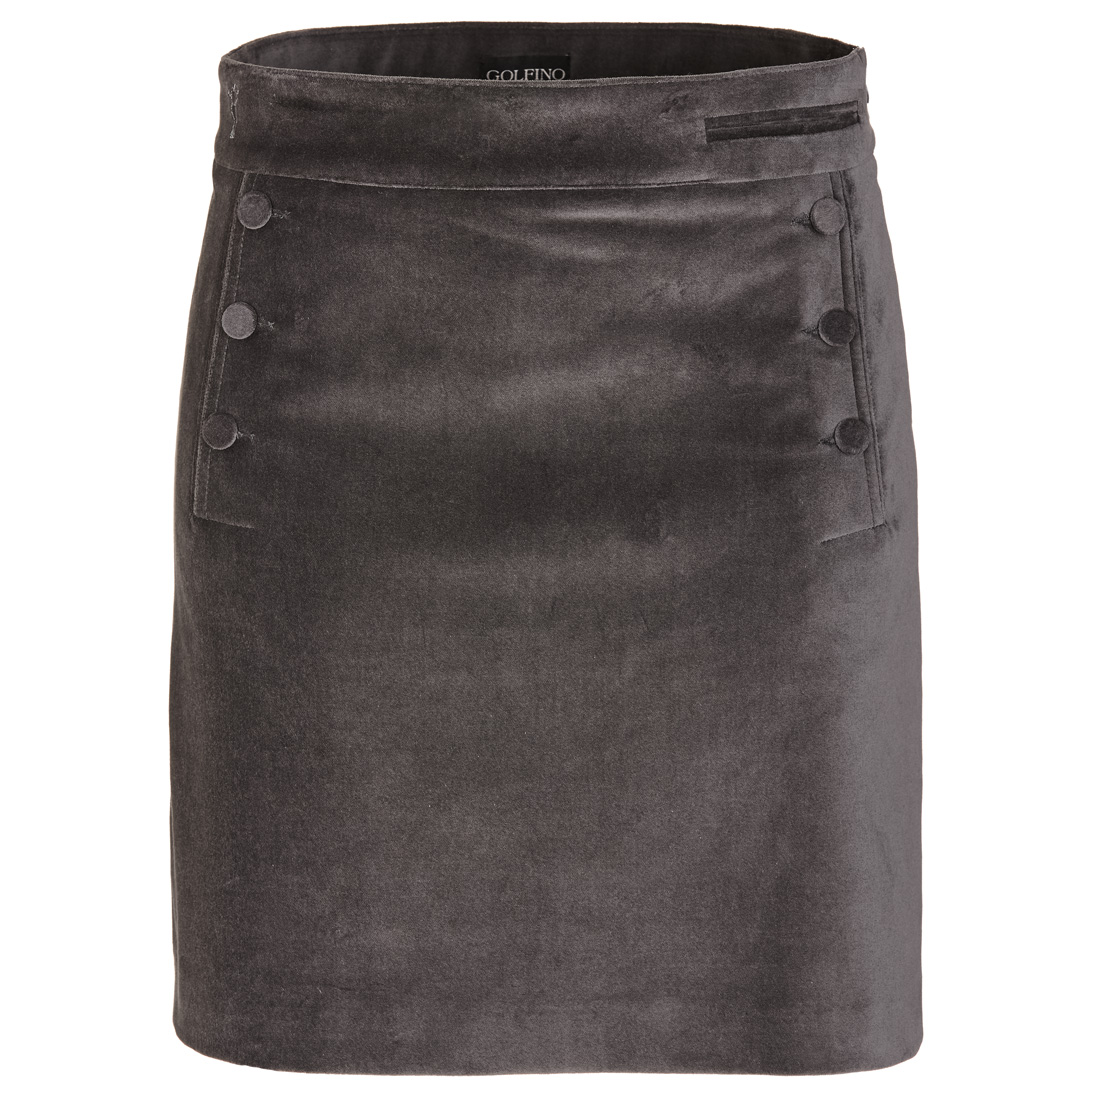 Velvet golf skort in exclusive stretch material with incorporated shorts